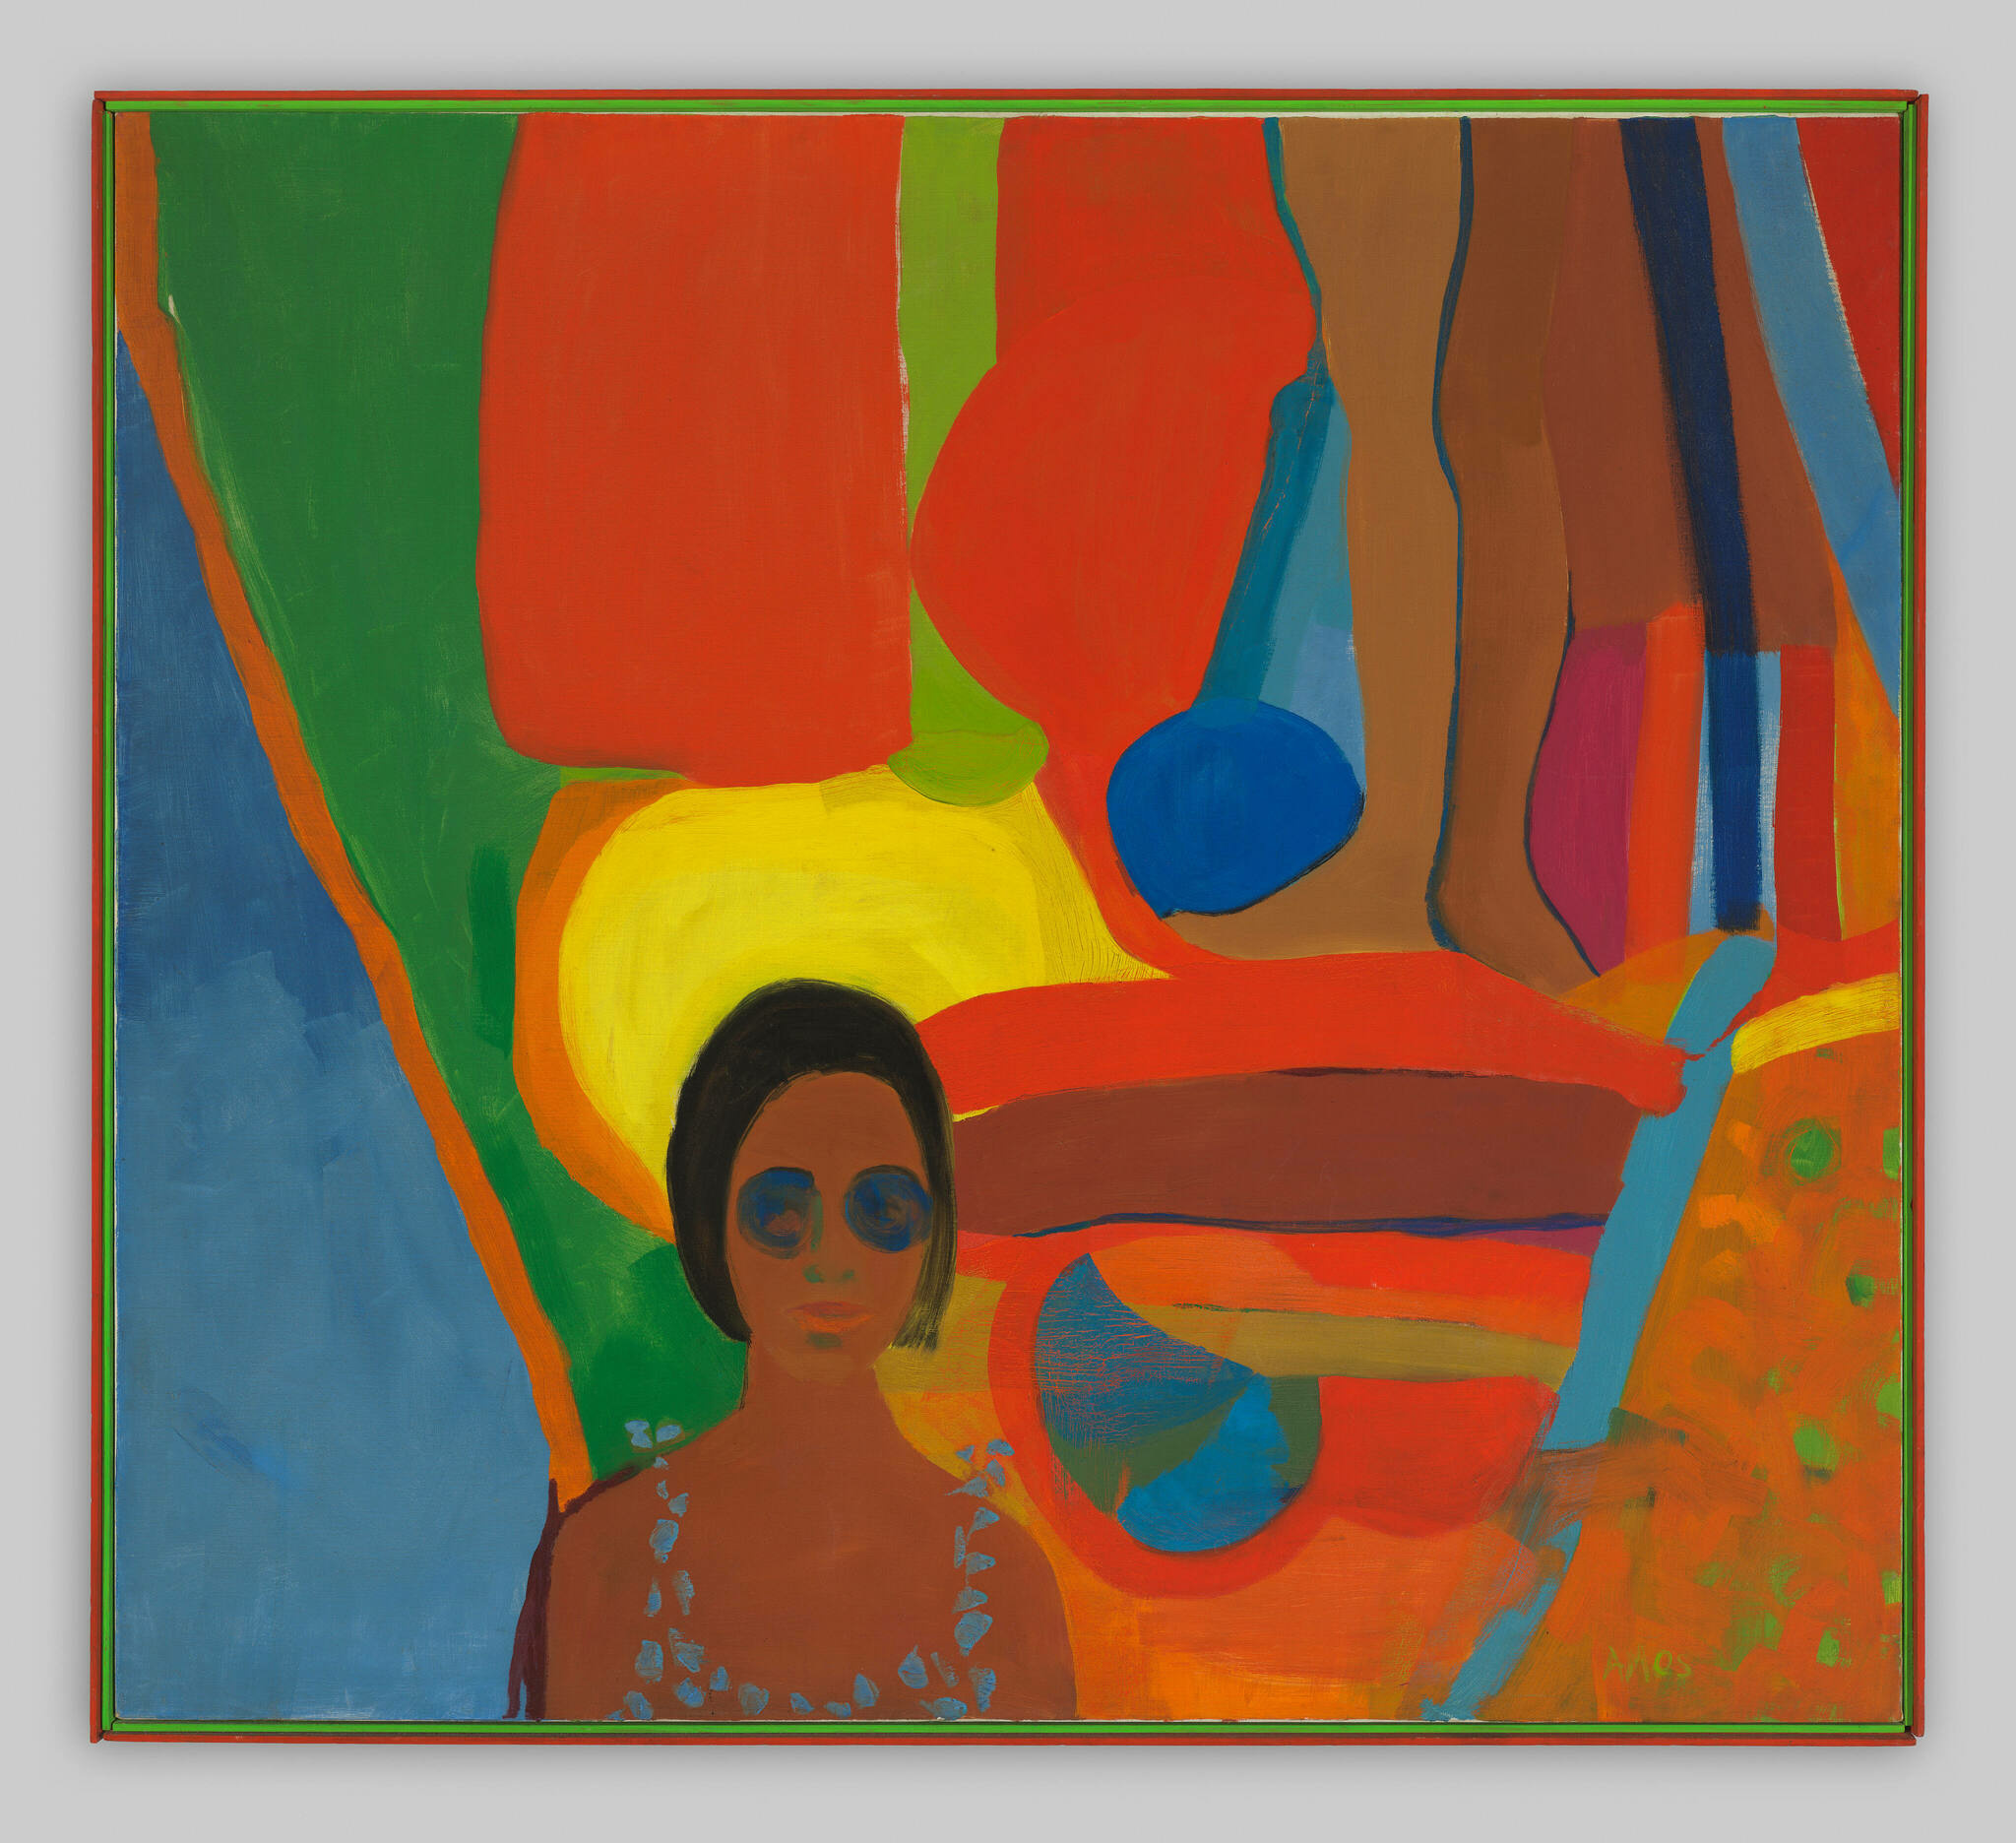 A female figure in sunglasses set against a medley of colorful abstract forms, with a pair of legs extending from above